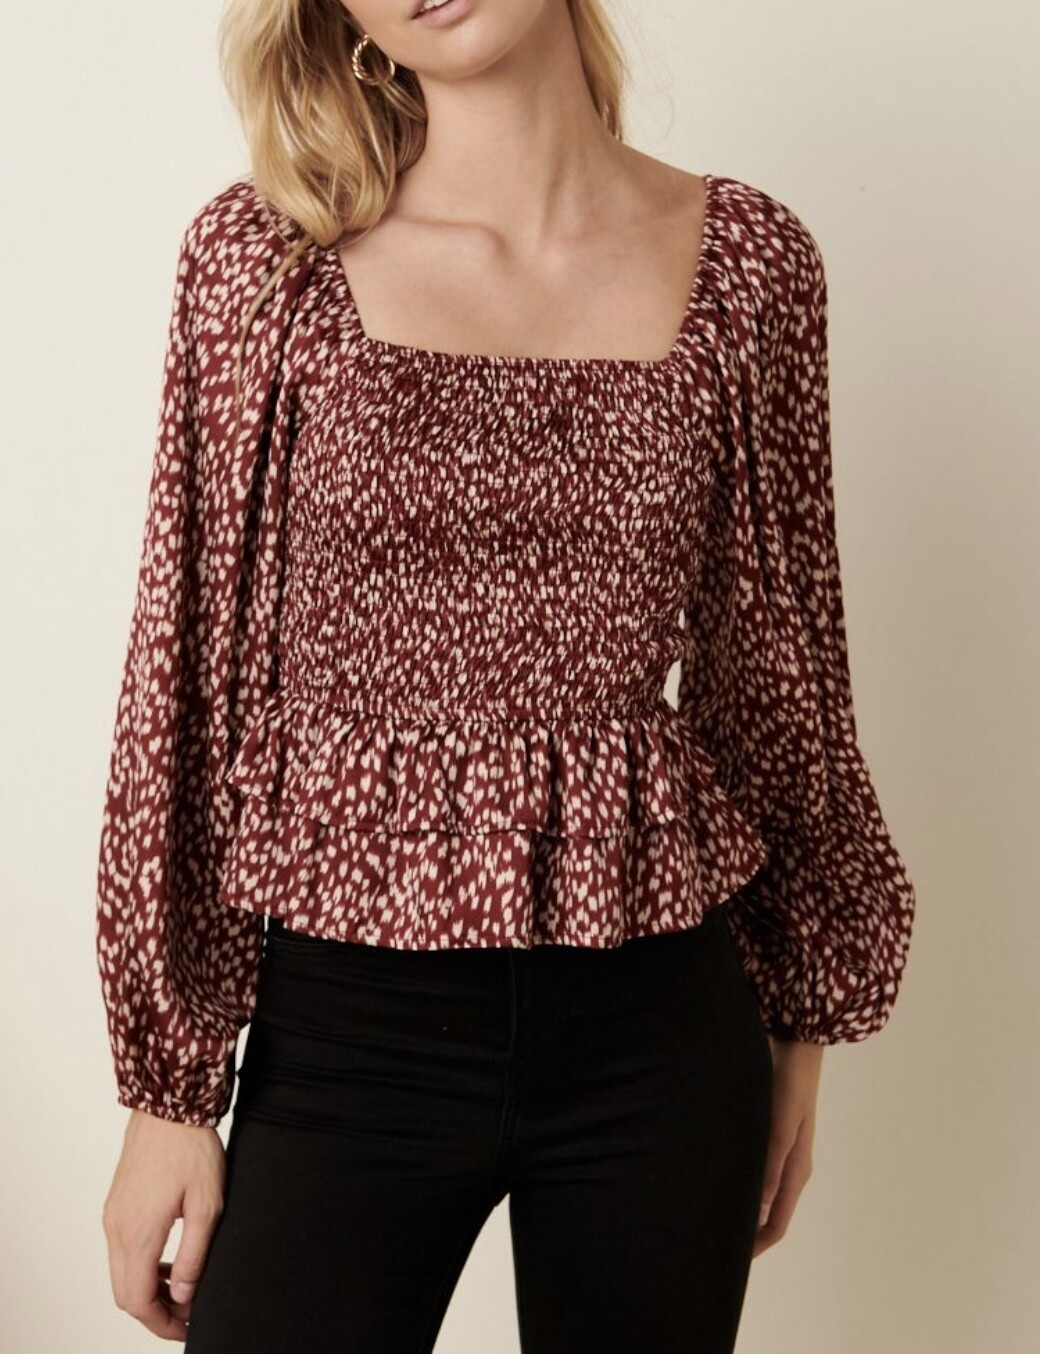 THE BEST OF ME BLOUSE